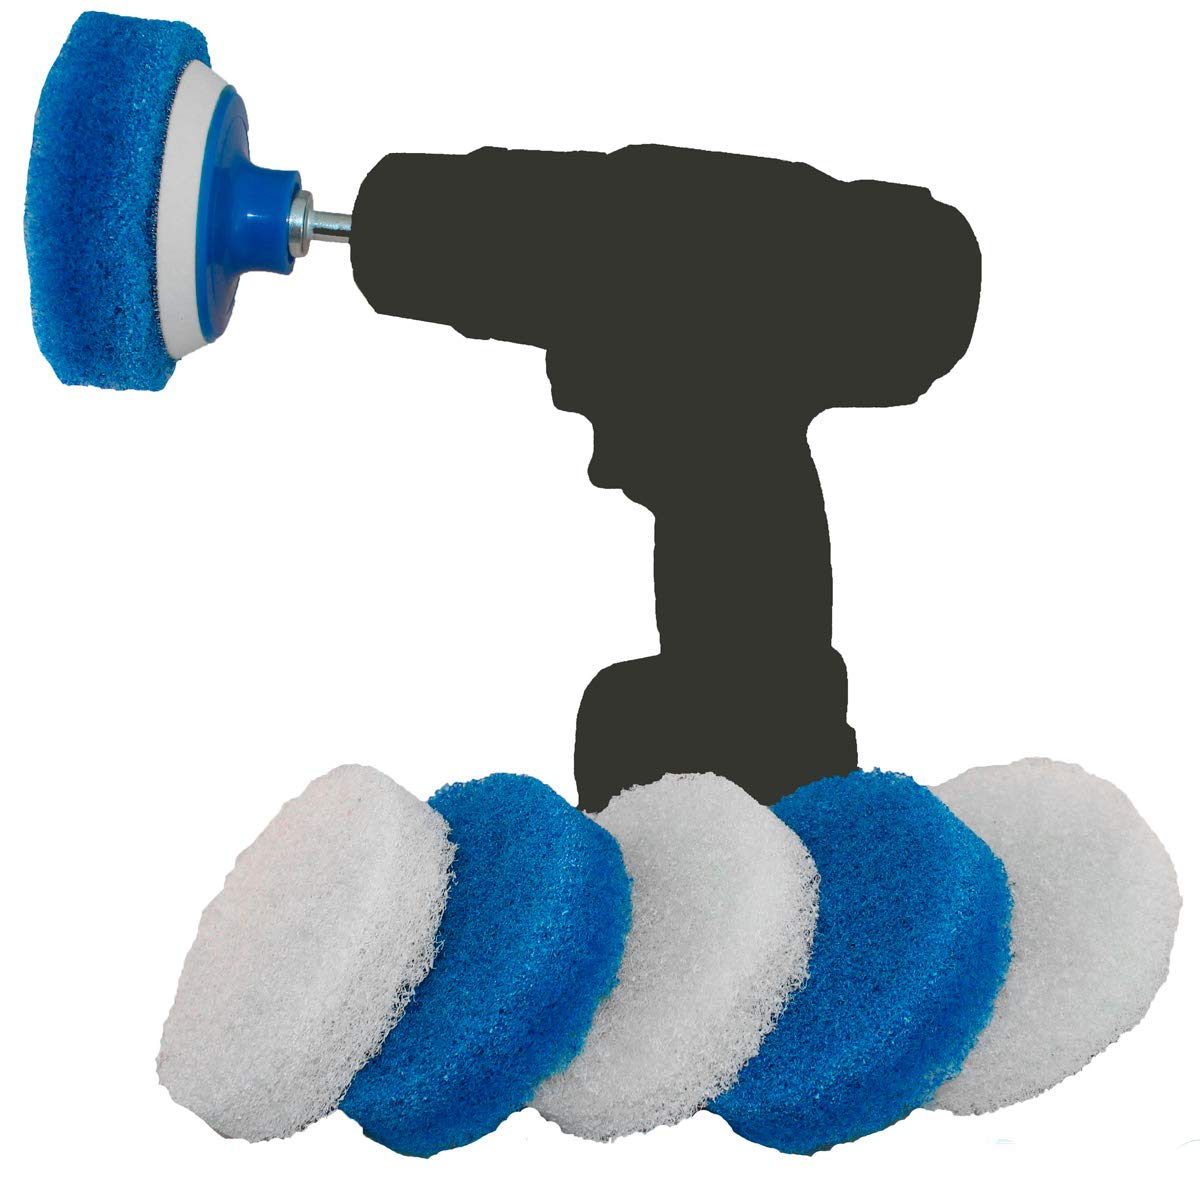 Scouring Pad Brush Electric Drill Clean Kitchen Floor Hard: Amazon.com: BasicBrush Drill Brush Attachment Kit